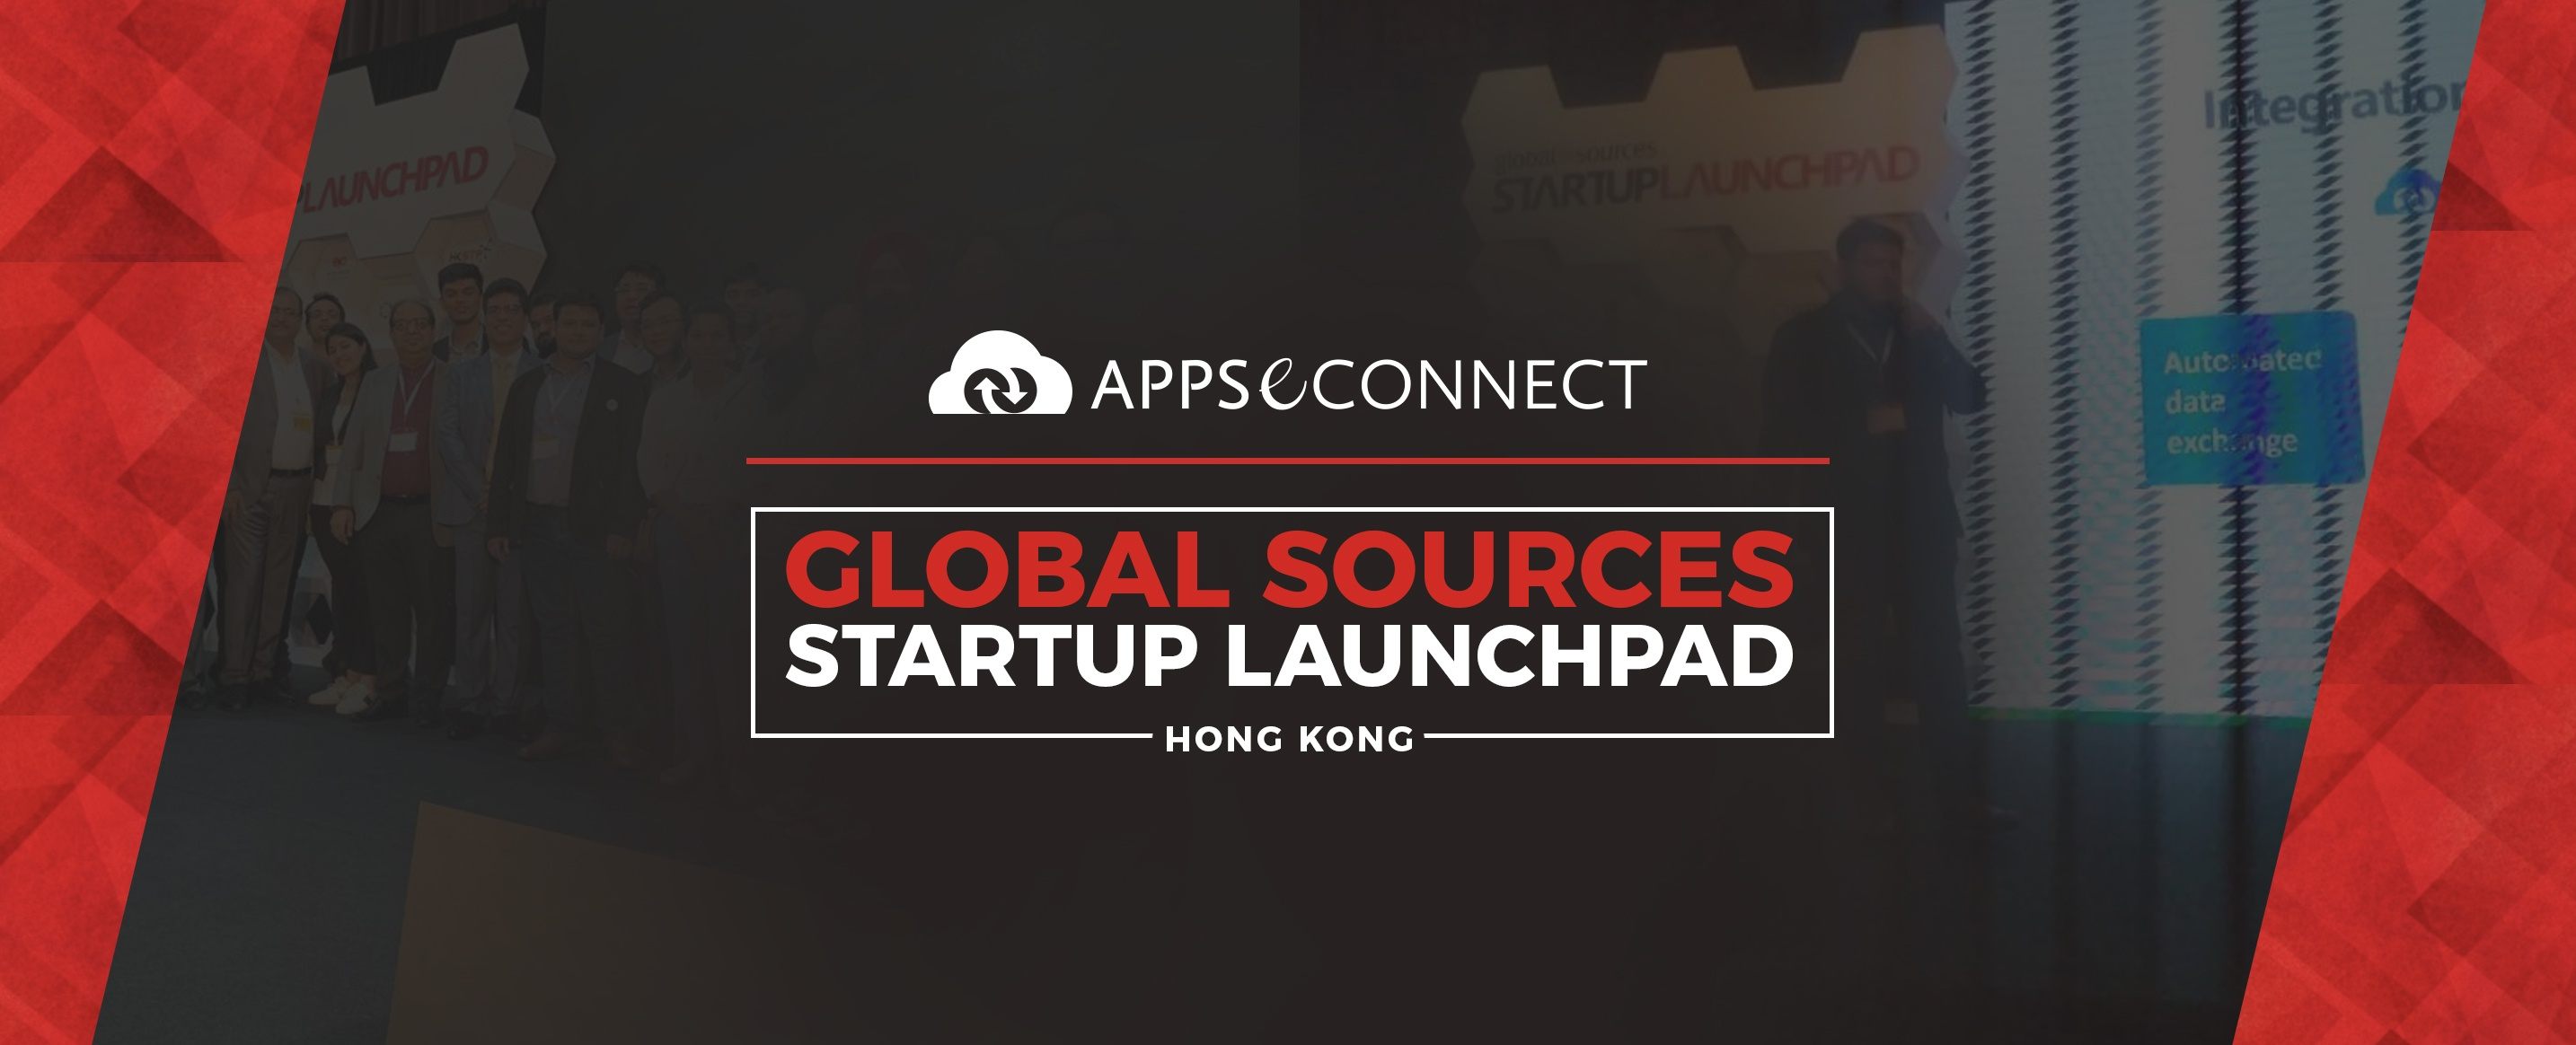 InSync-Exhibited-at-Global-Sources-Startup-Launchpad---Hong-Kong